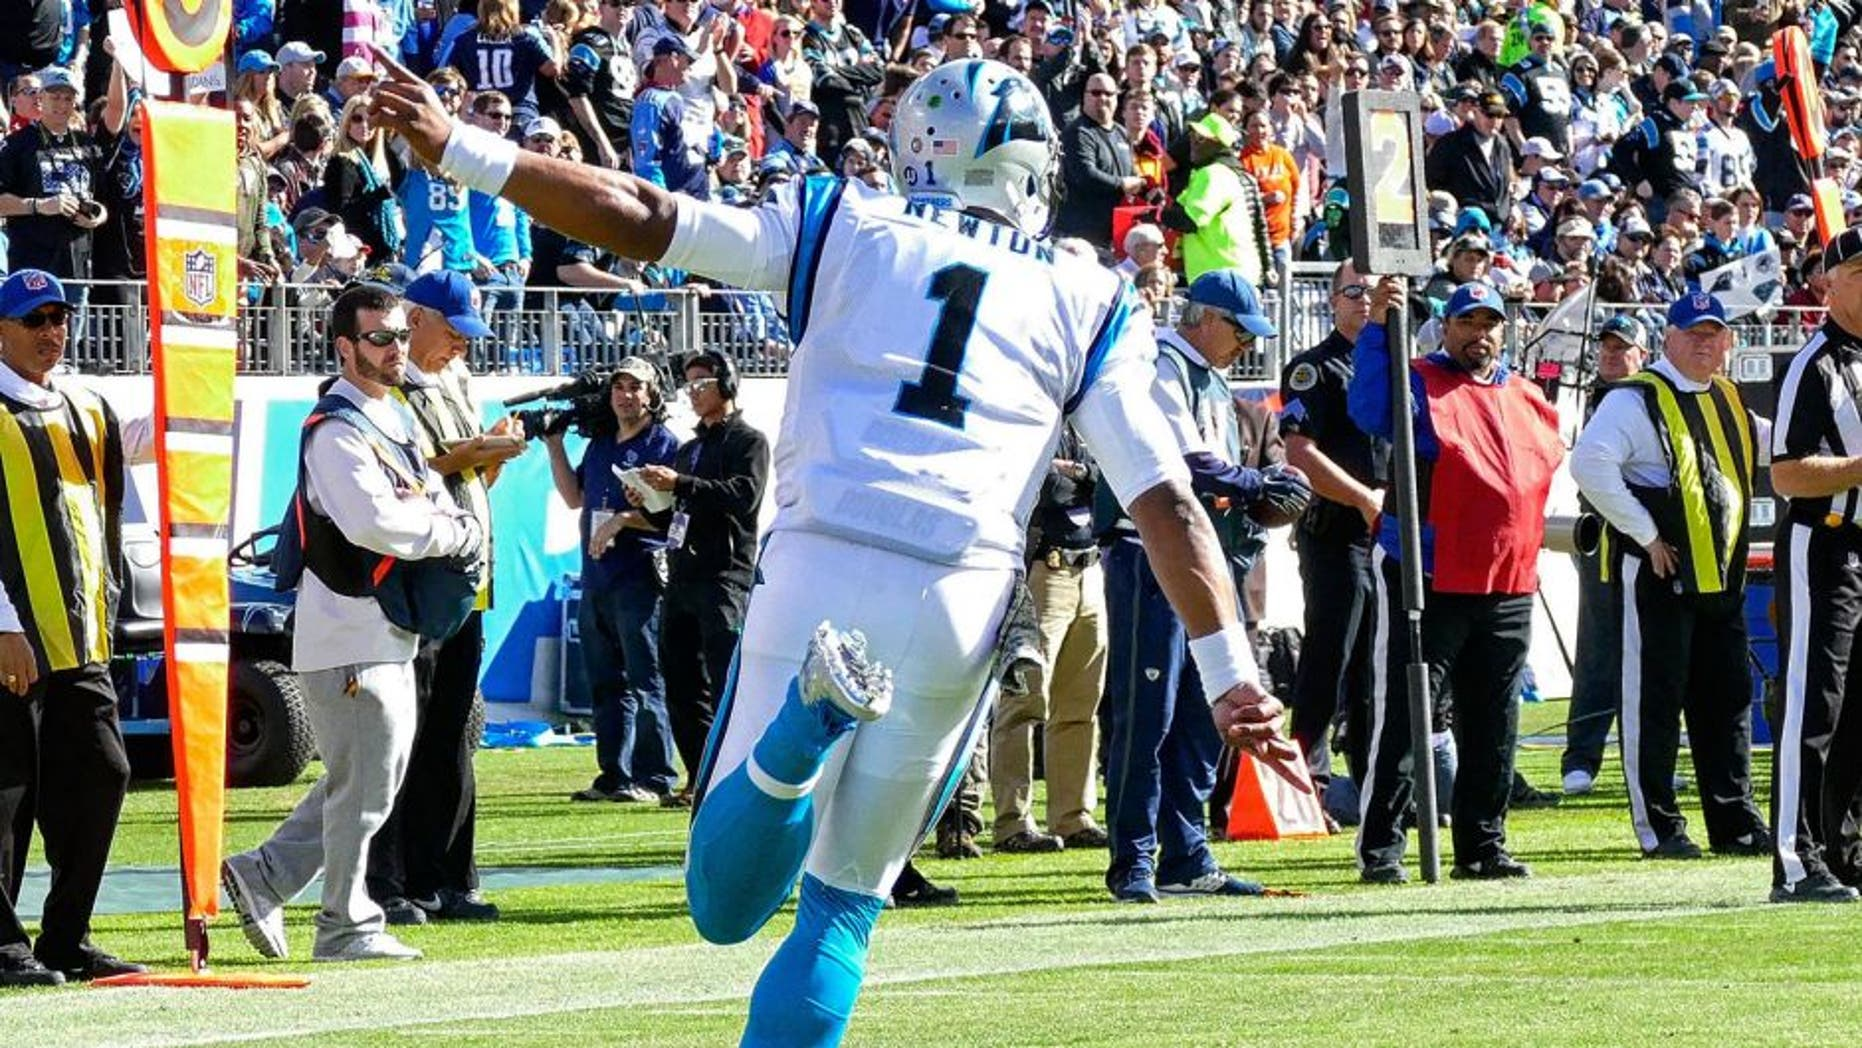 NASHVILLE, TN - NOVEMBER 15: Quarterback Cam Newton #1 of the Carolina Panthers celebrates after a touchdown against of the Tennessee Titans at Nissan Stadium on November 15, 2015 in Nashville, Tennessee. (Photo by Frederick Breedon/Getty Images)